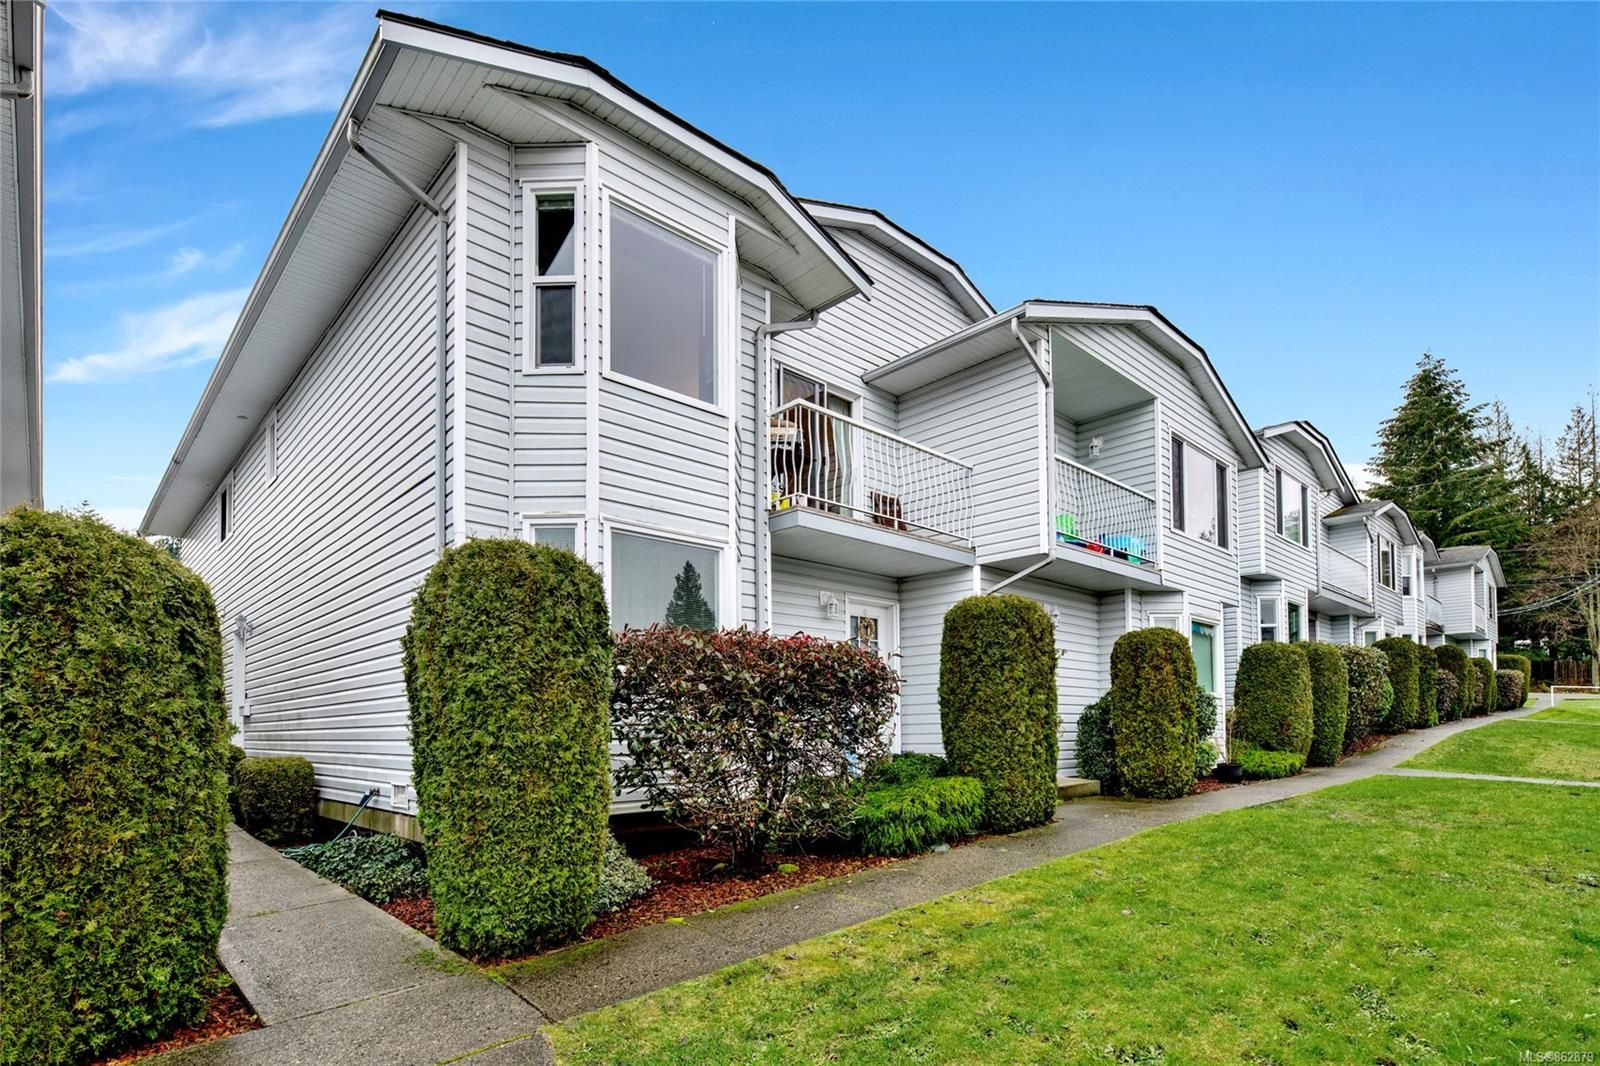 Main Photo: 12 270 Harwell Rd in : Na University District Row/Townhouse for sale (Nanaimo)  : MLS®# 862879